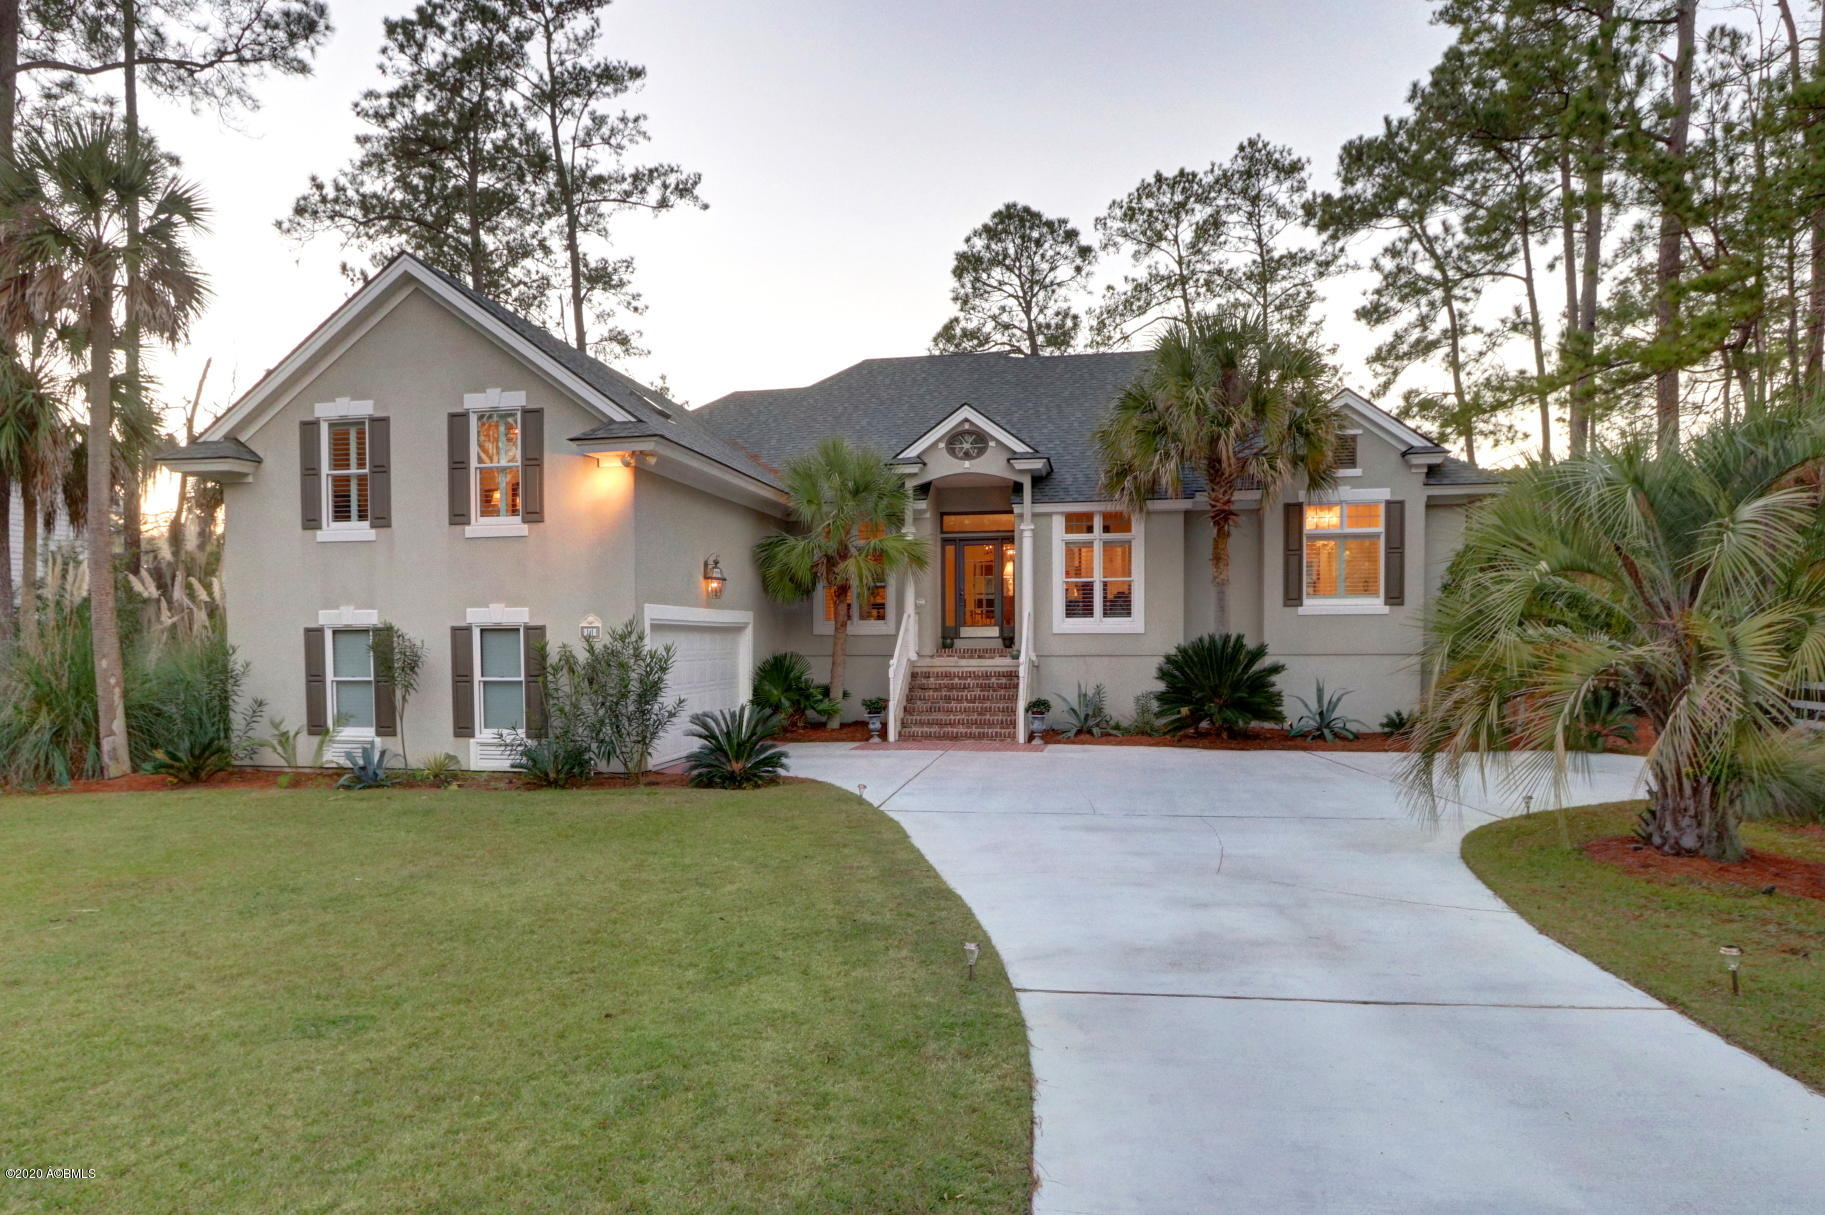 Photo of 11 Belfair Point Drive, Bluffton, SC 29910